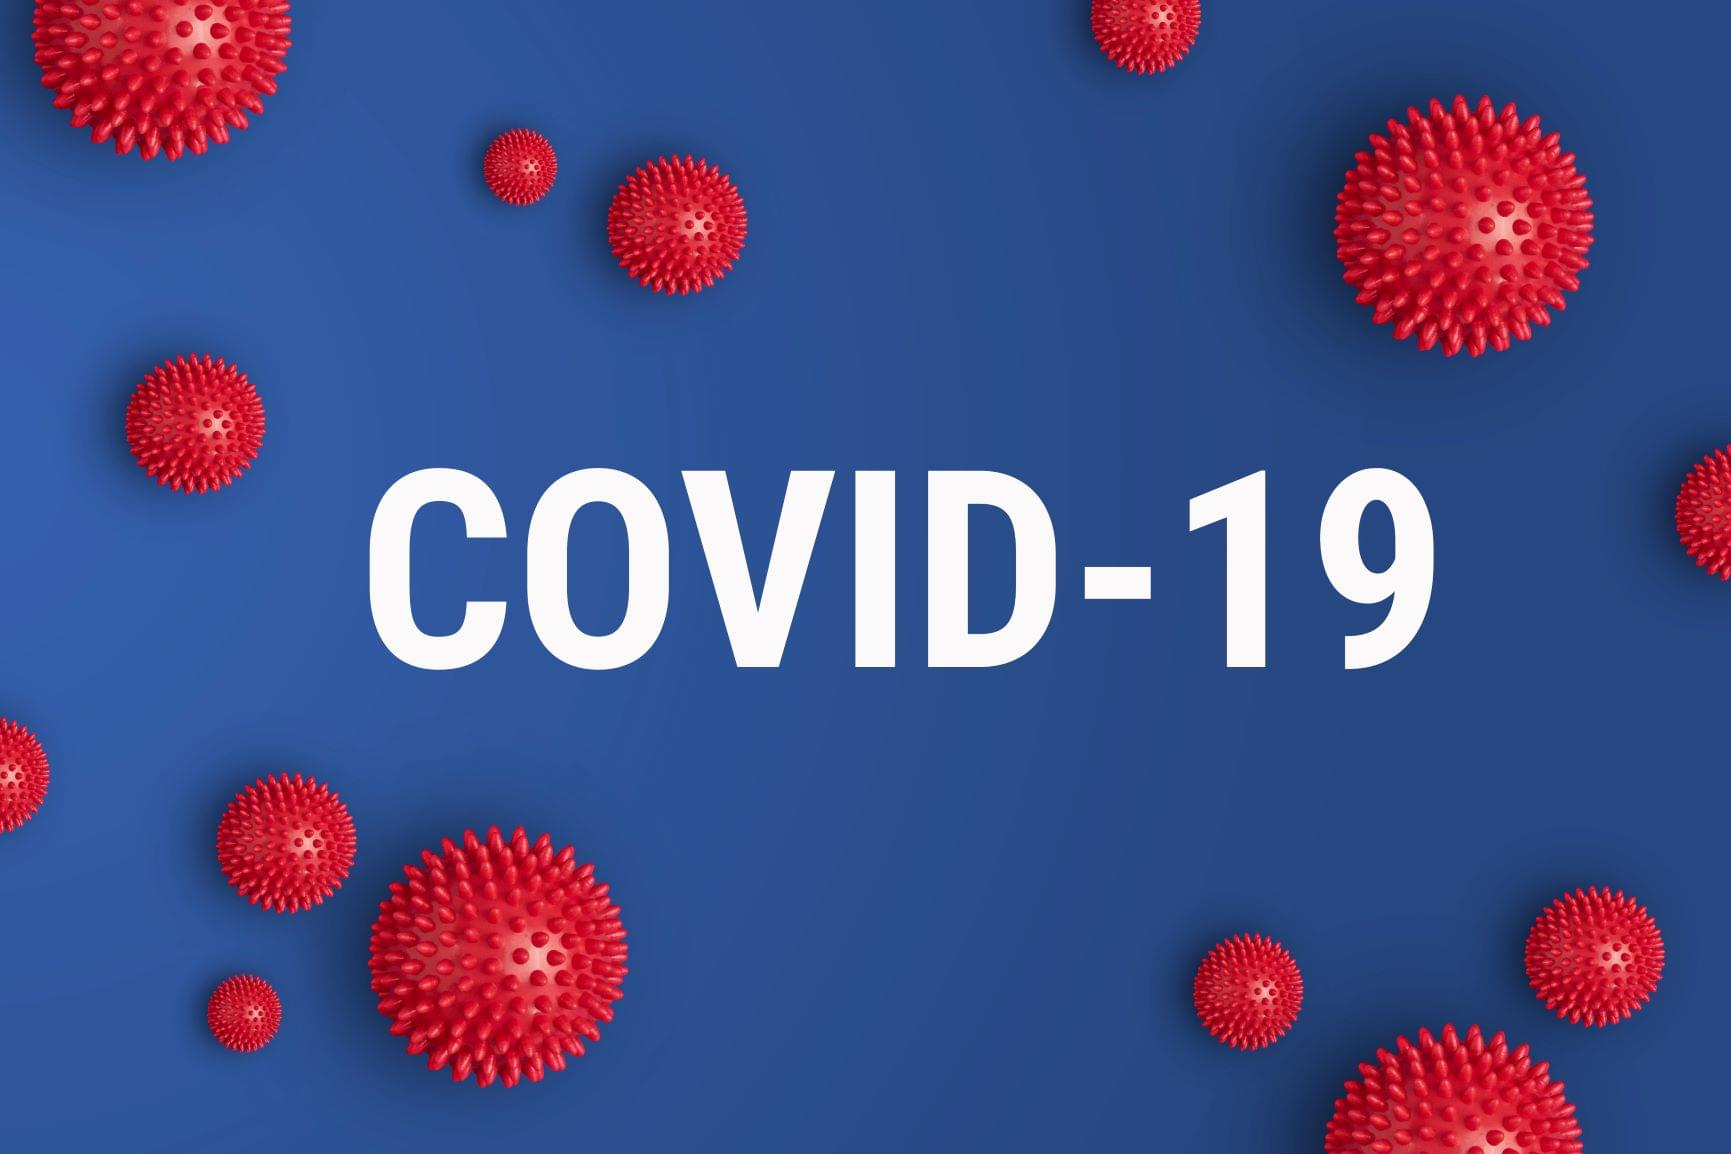 New COVID Variants Could Erase Progress On Virus Containment